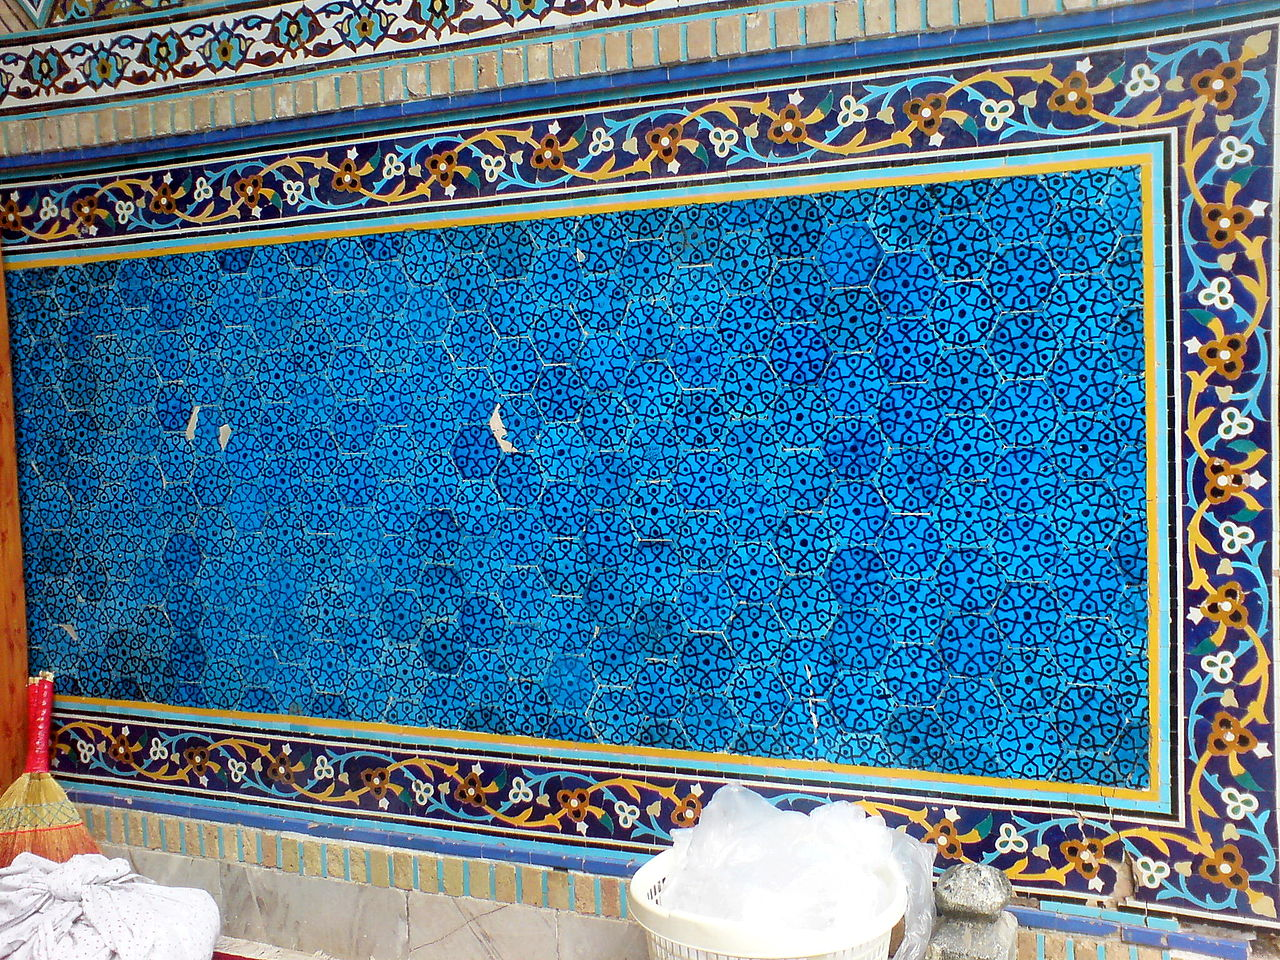 Middle_portico_of_Al-Mahruq_Mosque_-_Tiling_04.JPG